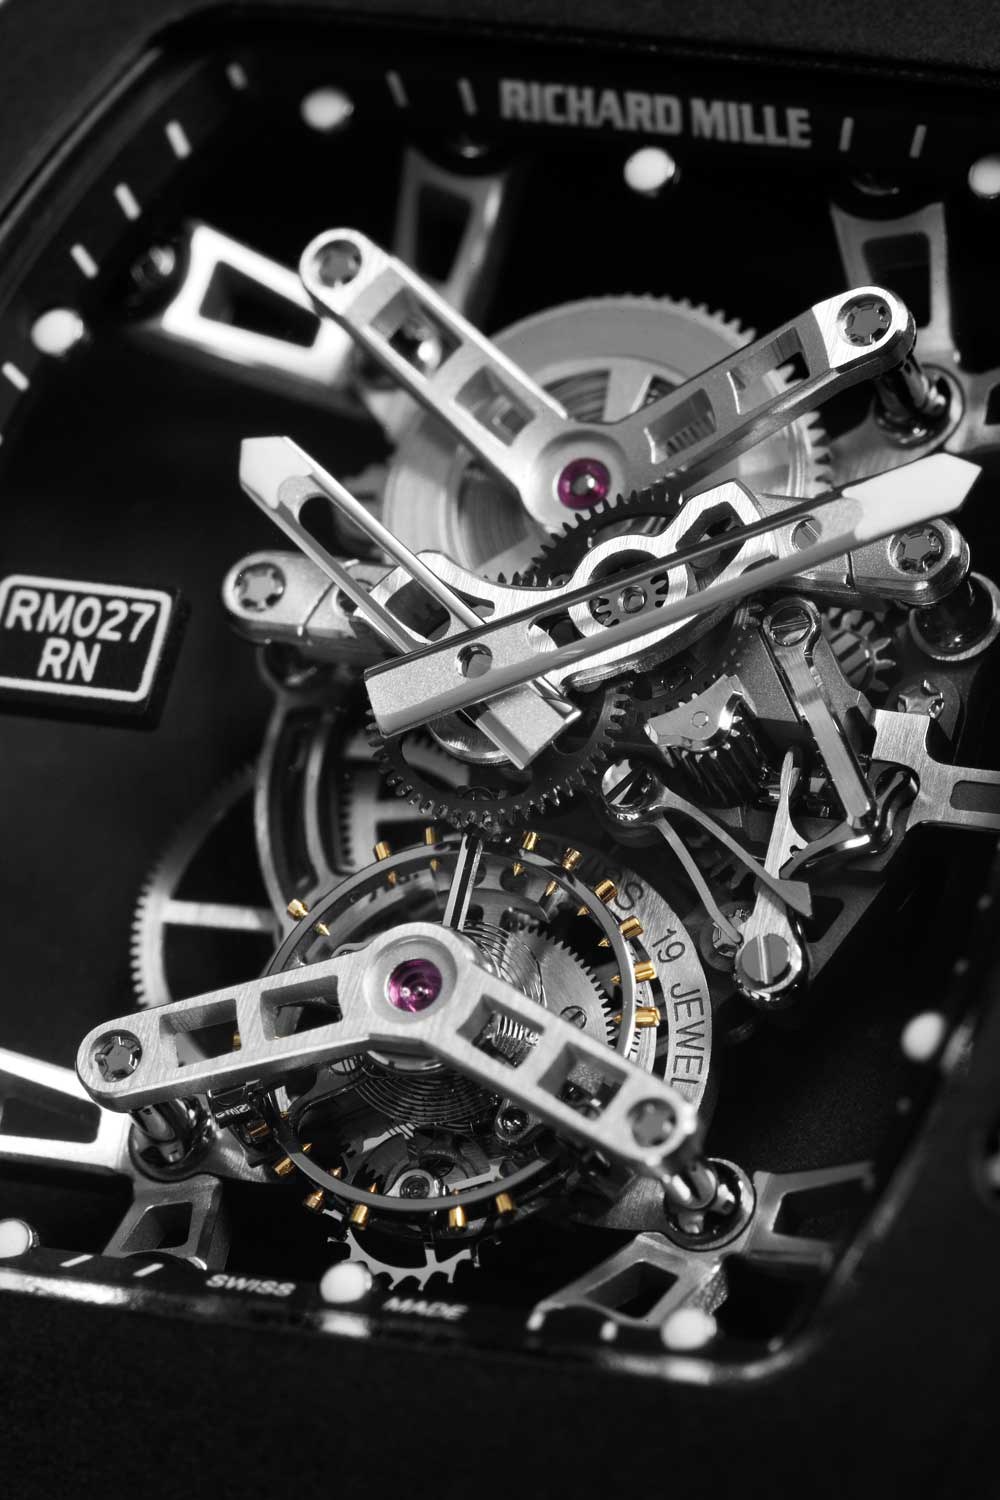 The RM 027 features a monobloc carbon-nanofibre case, aluminium lithium bridges making it ultra lightweight and super strong; a close-up of the tourbillon of the RM 027